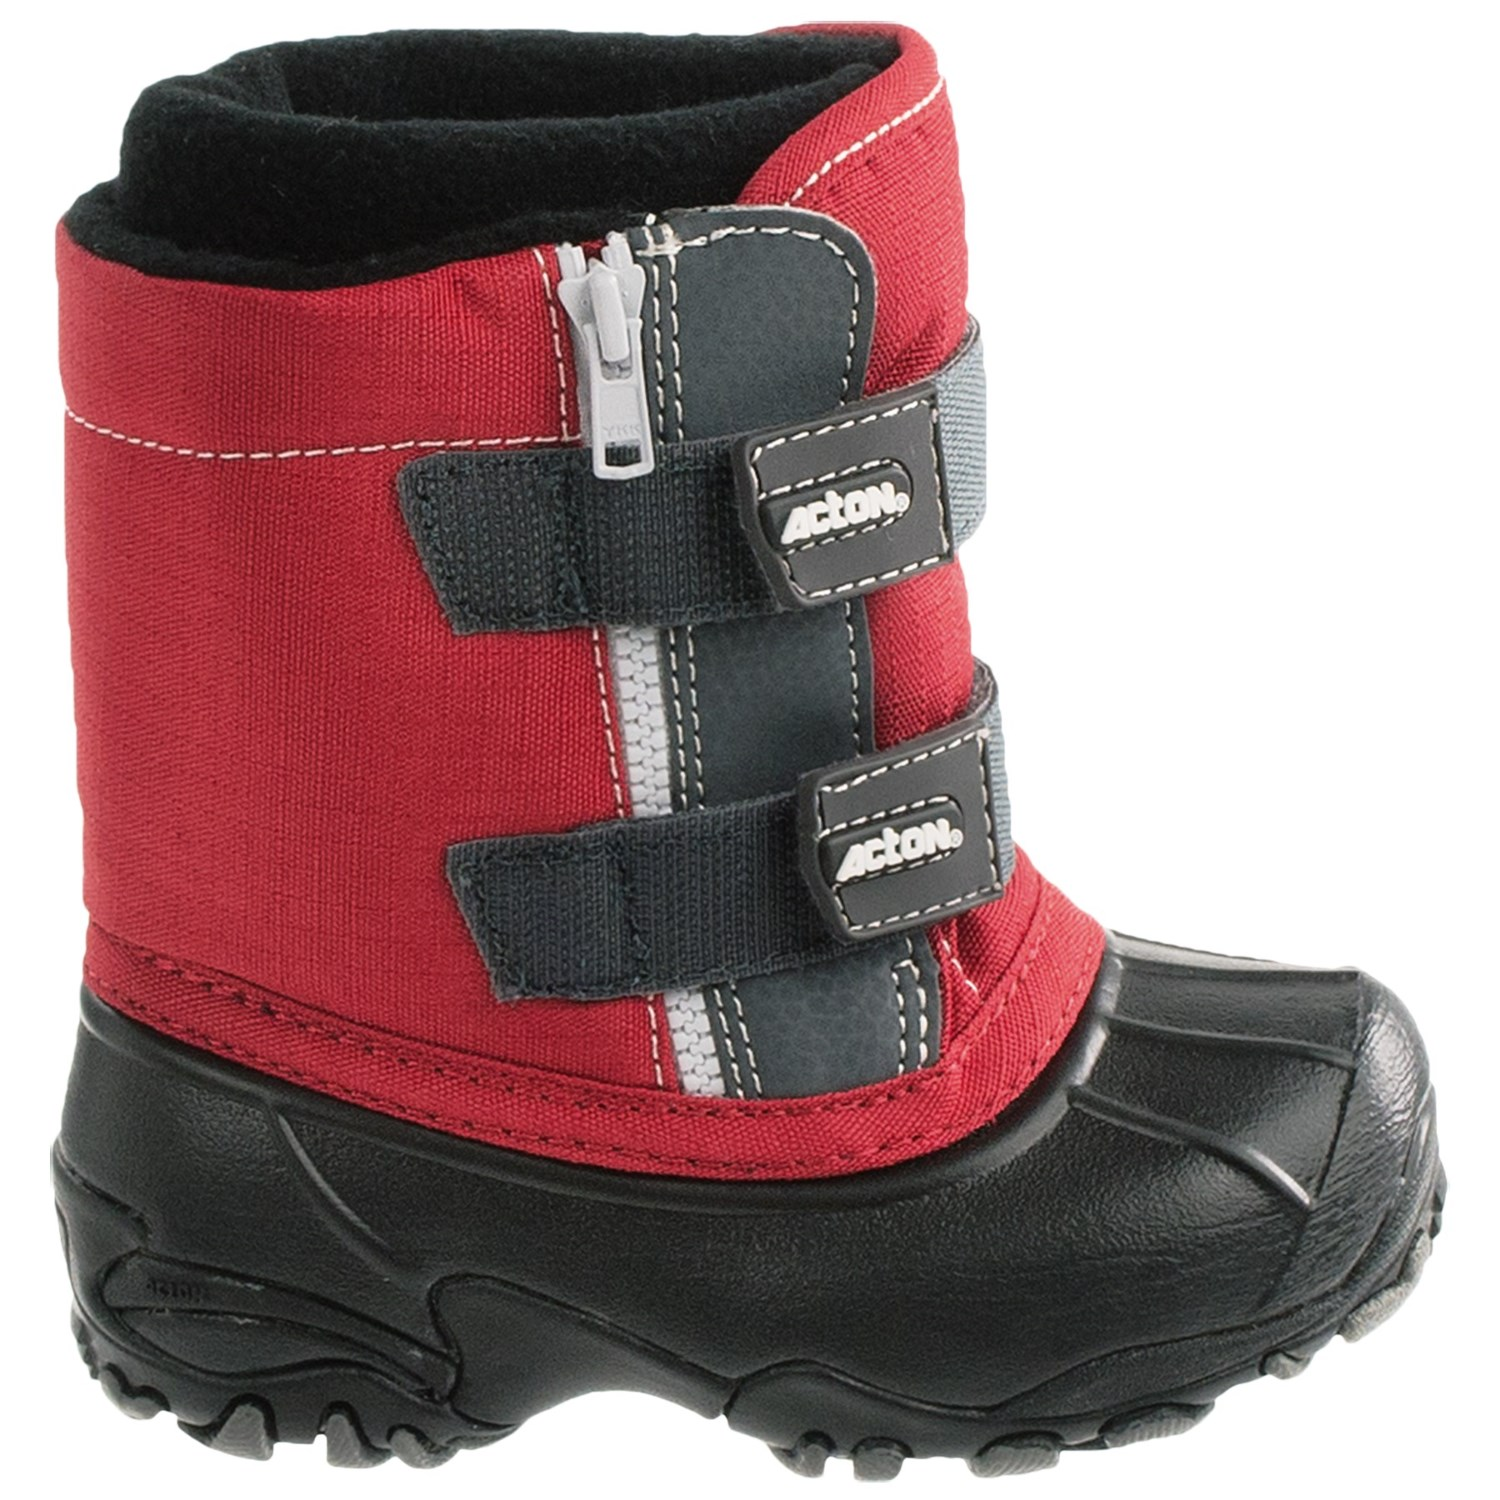 Acton Icebug Snow Boots (For Little Kids) 7516T - Save 35%